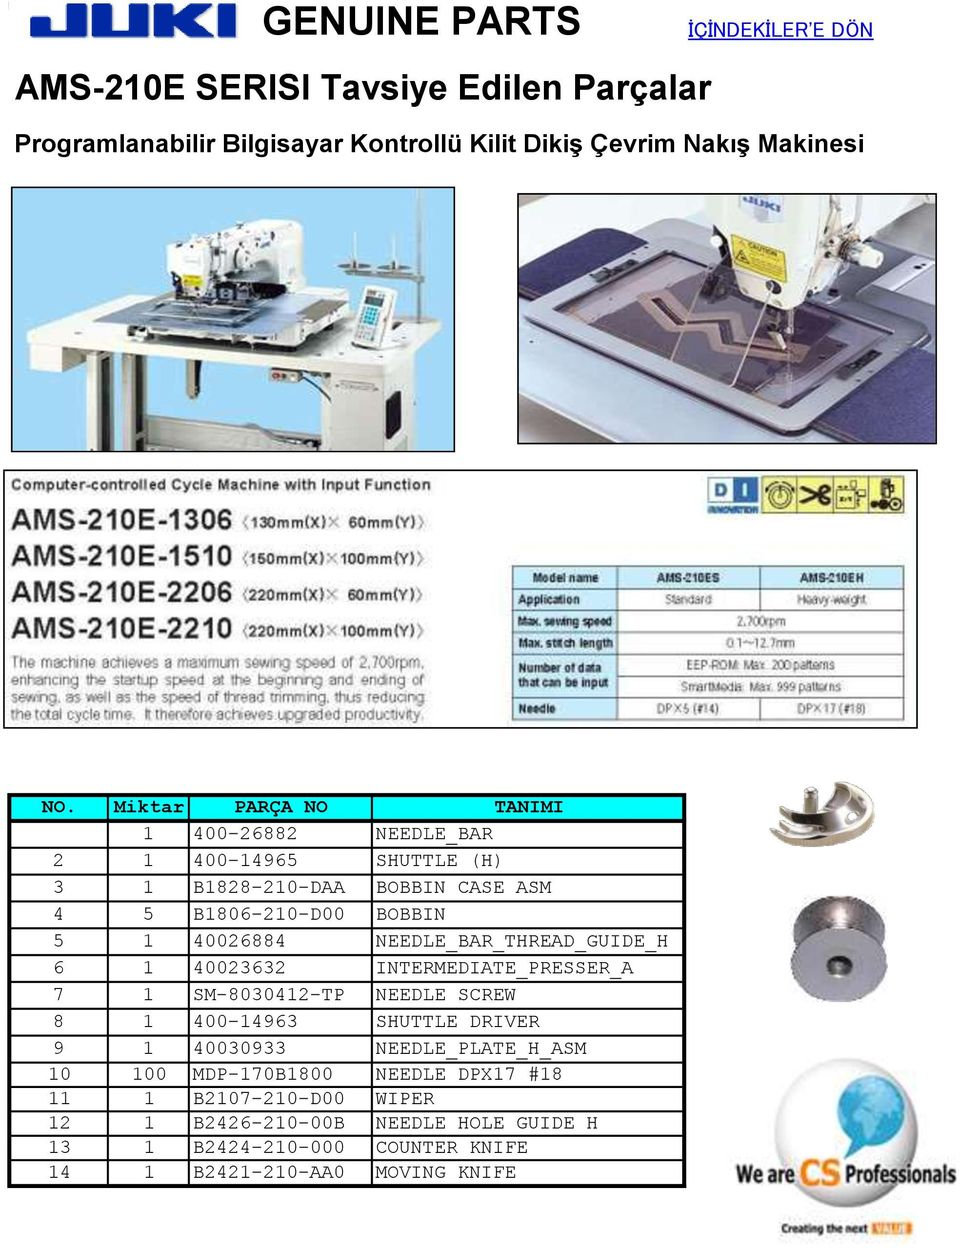 INTERMEDIATE_PRESSER_A 7 1 SM-8030412-TP NEEDLE SCREW 8 1 400-14963 SHUTTLE DRIVER 9 1 40030933 NEEDLE_PLATE_H_ASM 10 100 MDP-170B1800